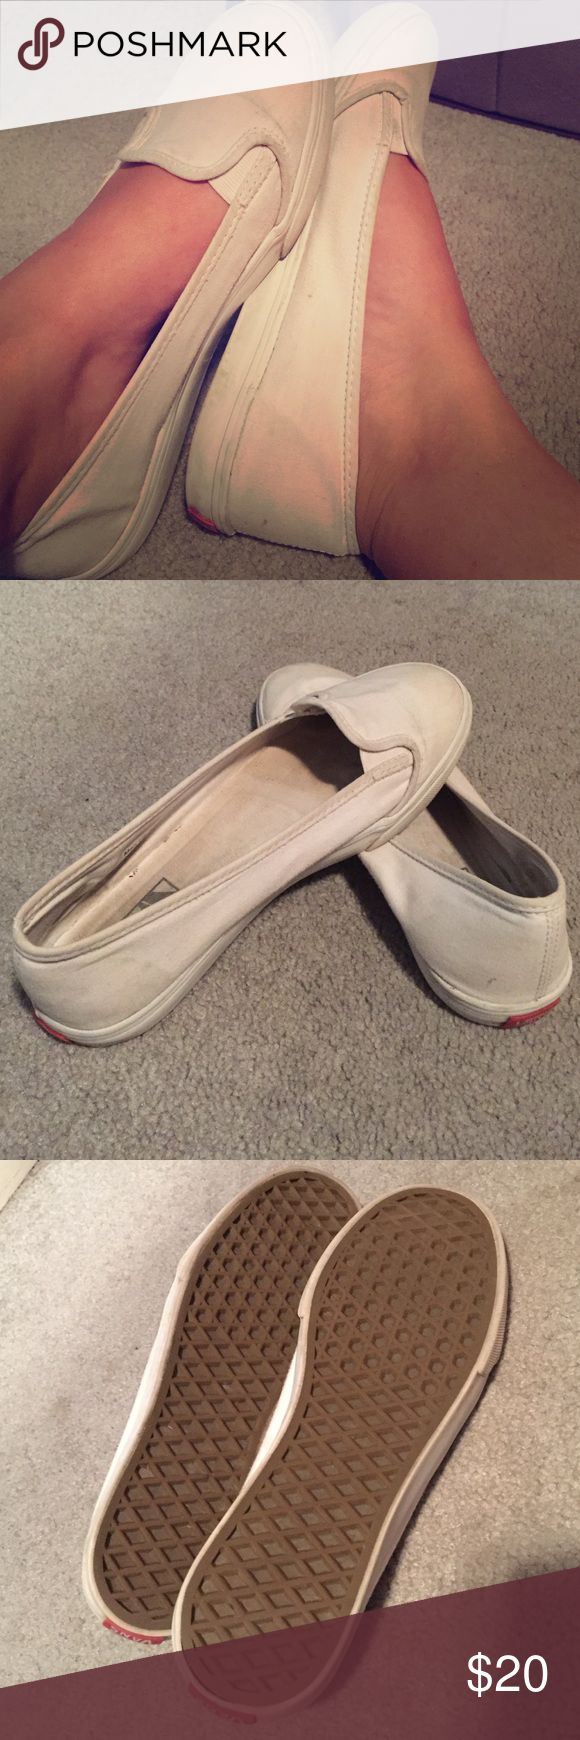 White slip on vans White slip on vans. A little dirty but will wash off in the washer. Lightly worn on the soles almost not noticeable! Size 7 1/2 Vans Shoes Sneakers